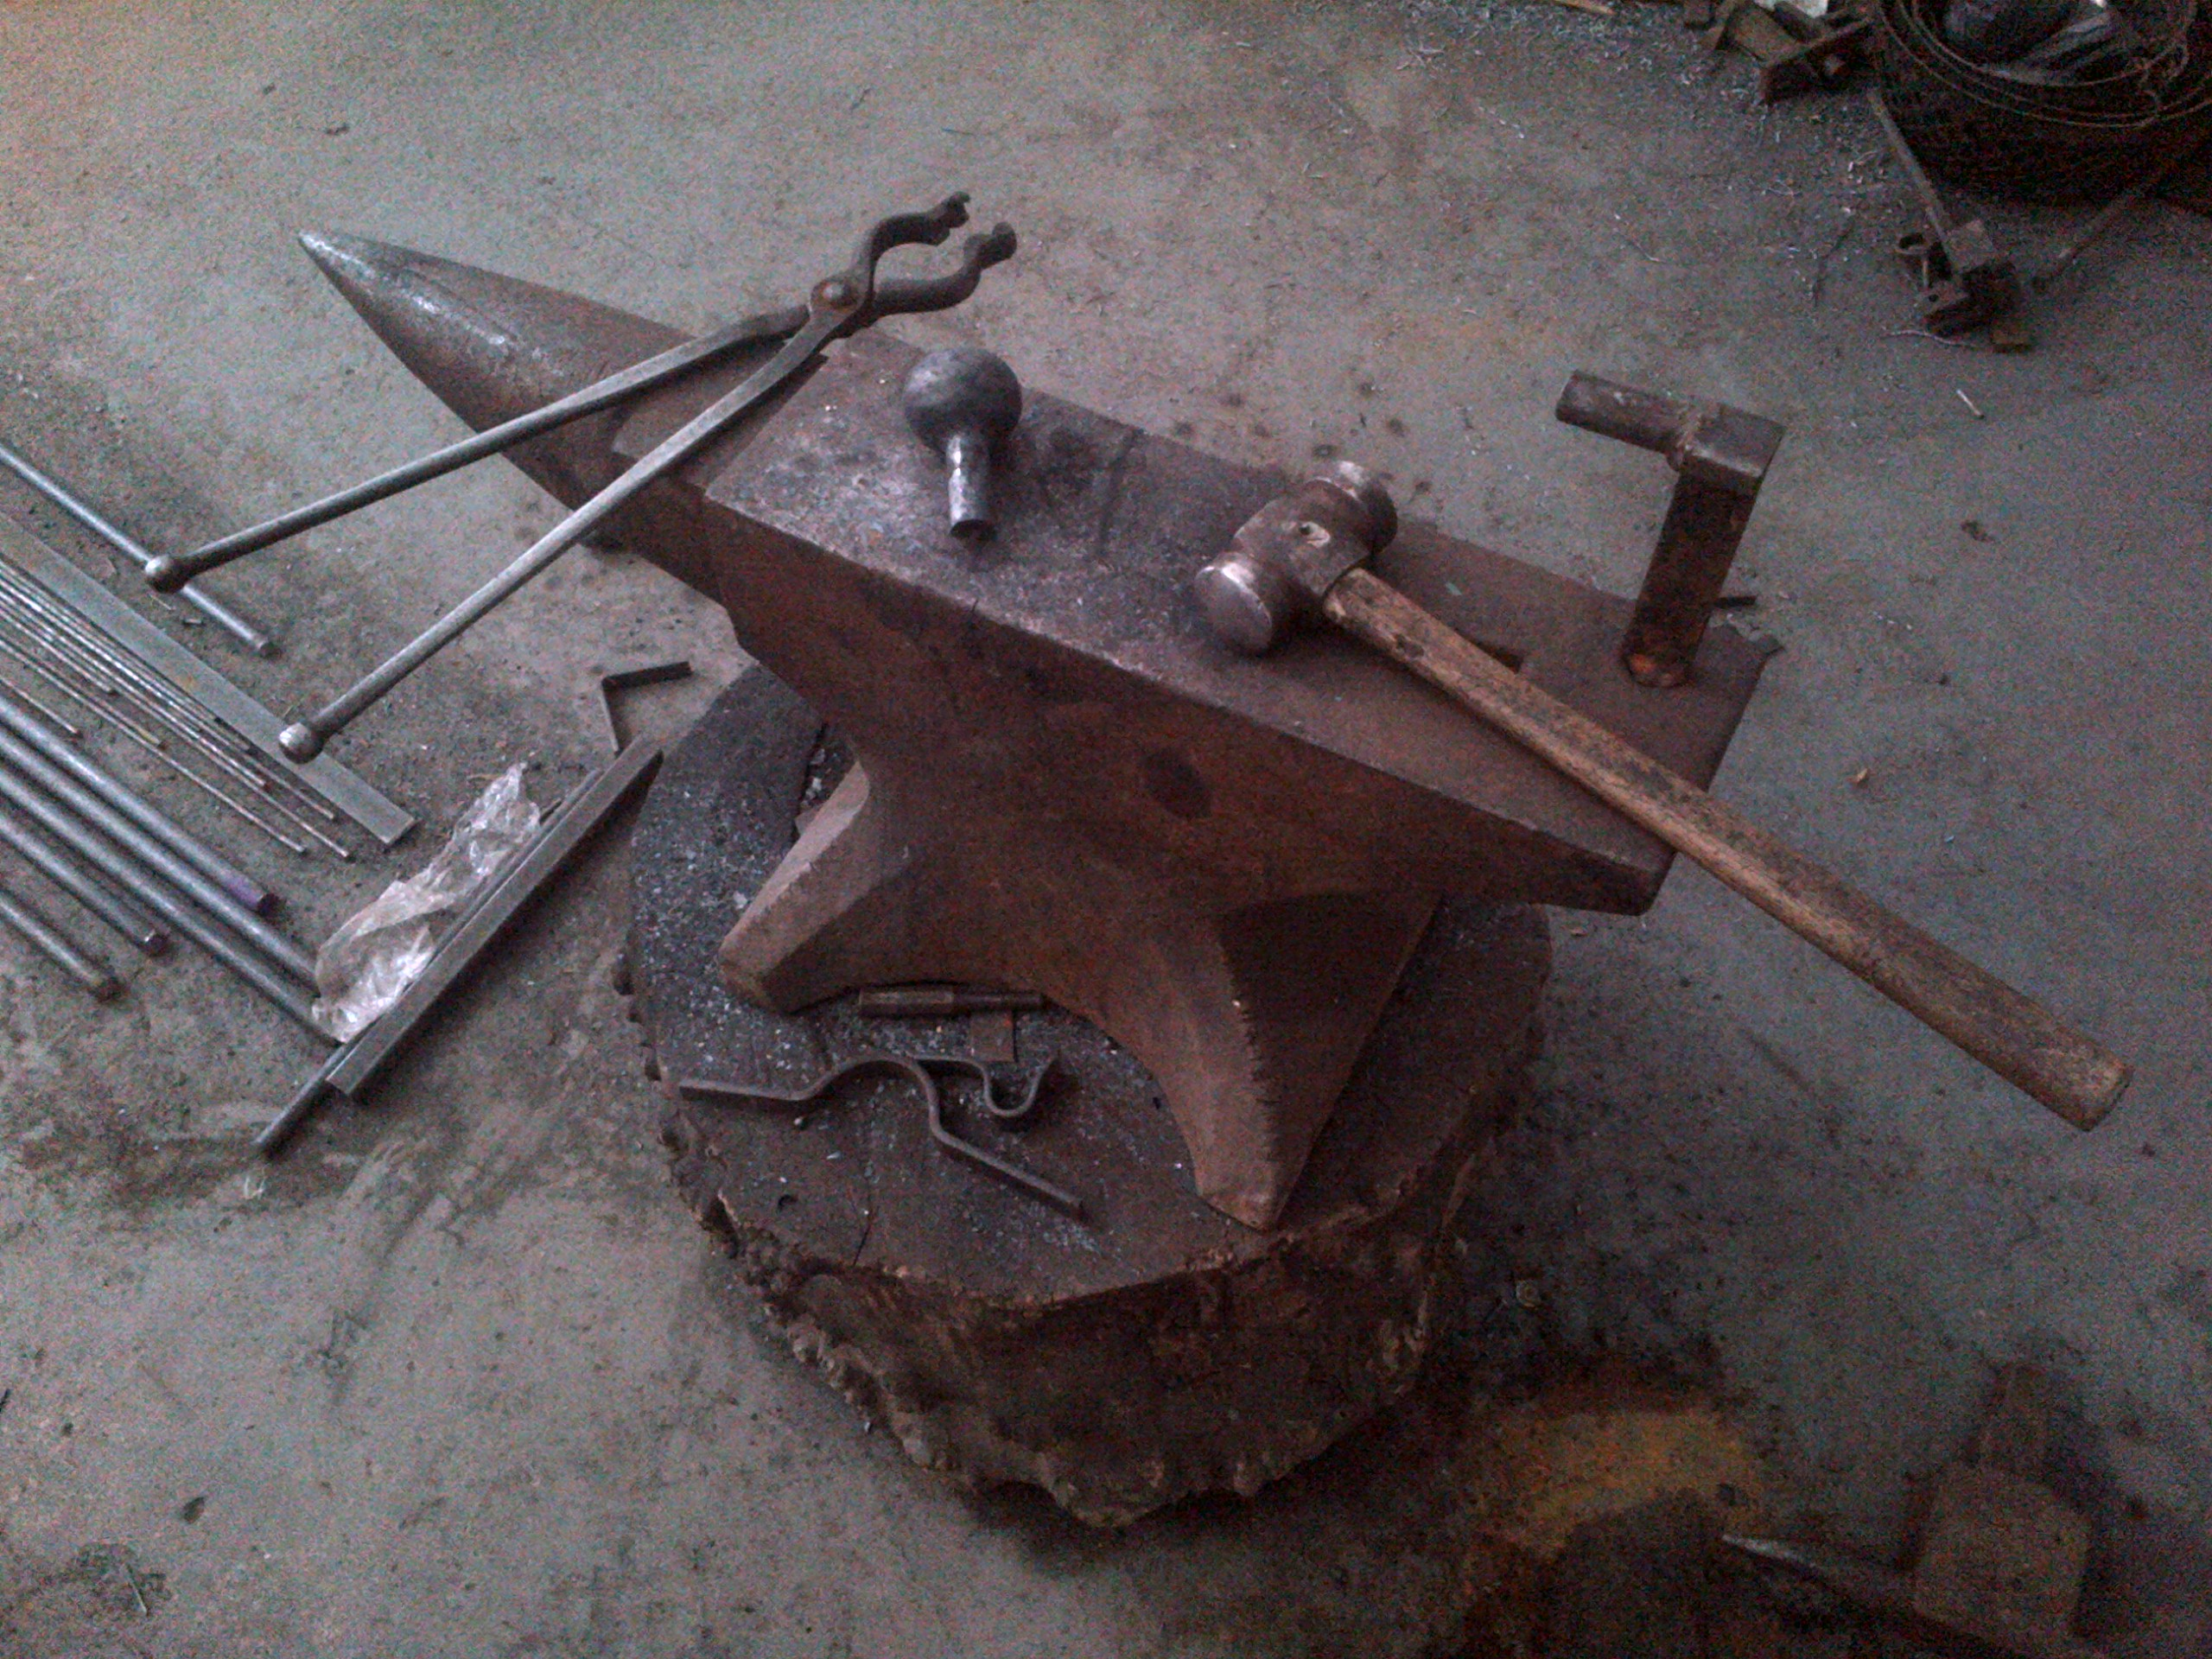 Anvil, tools and a finial in the making